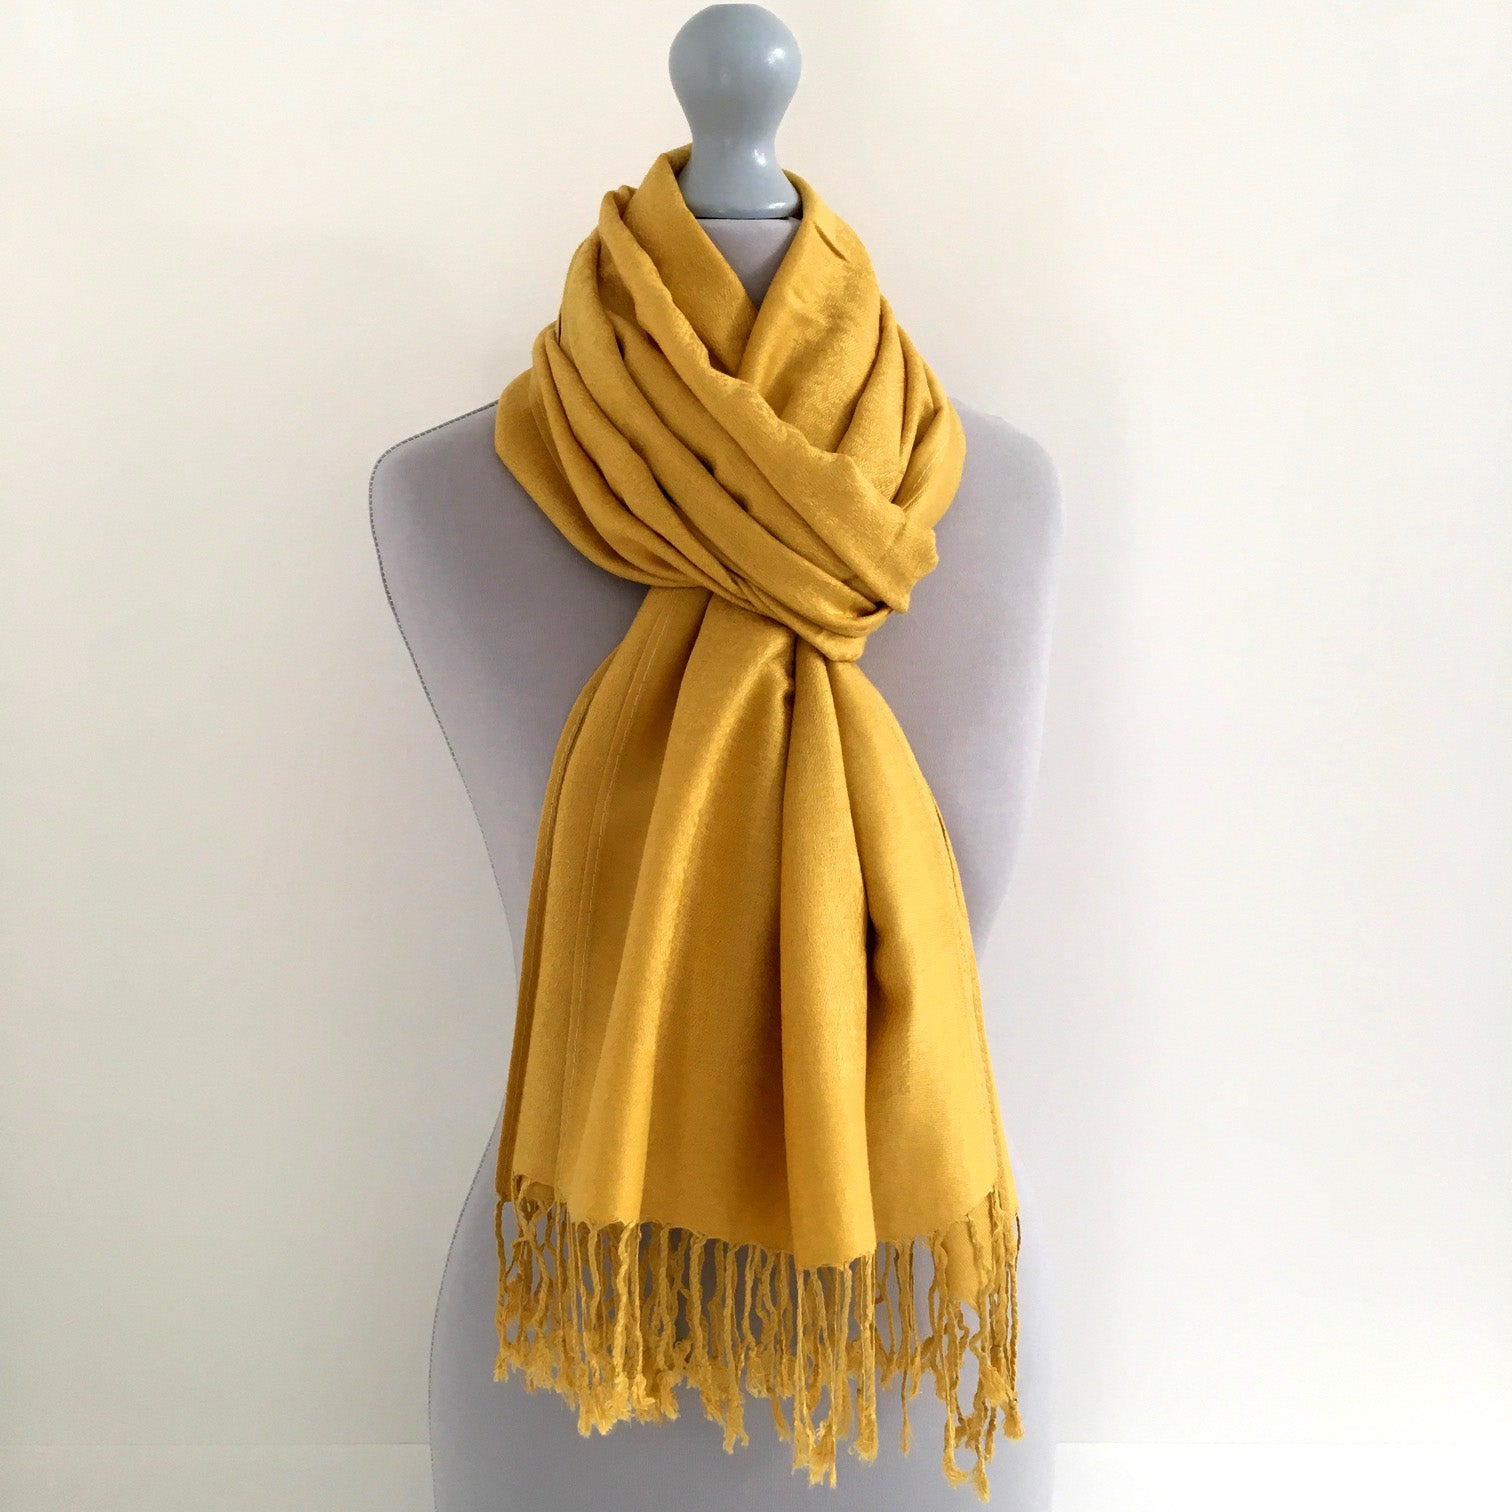 A-SHU MUSTARD YELLOW PAISLEY PRINT REVERSIBLE PASHMINA SHAWL SCARF - A-SHU.CO.UK